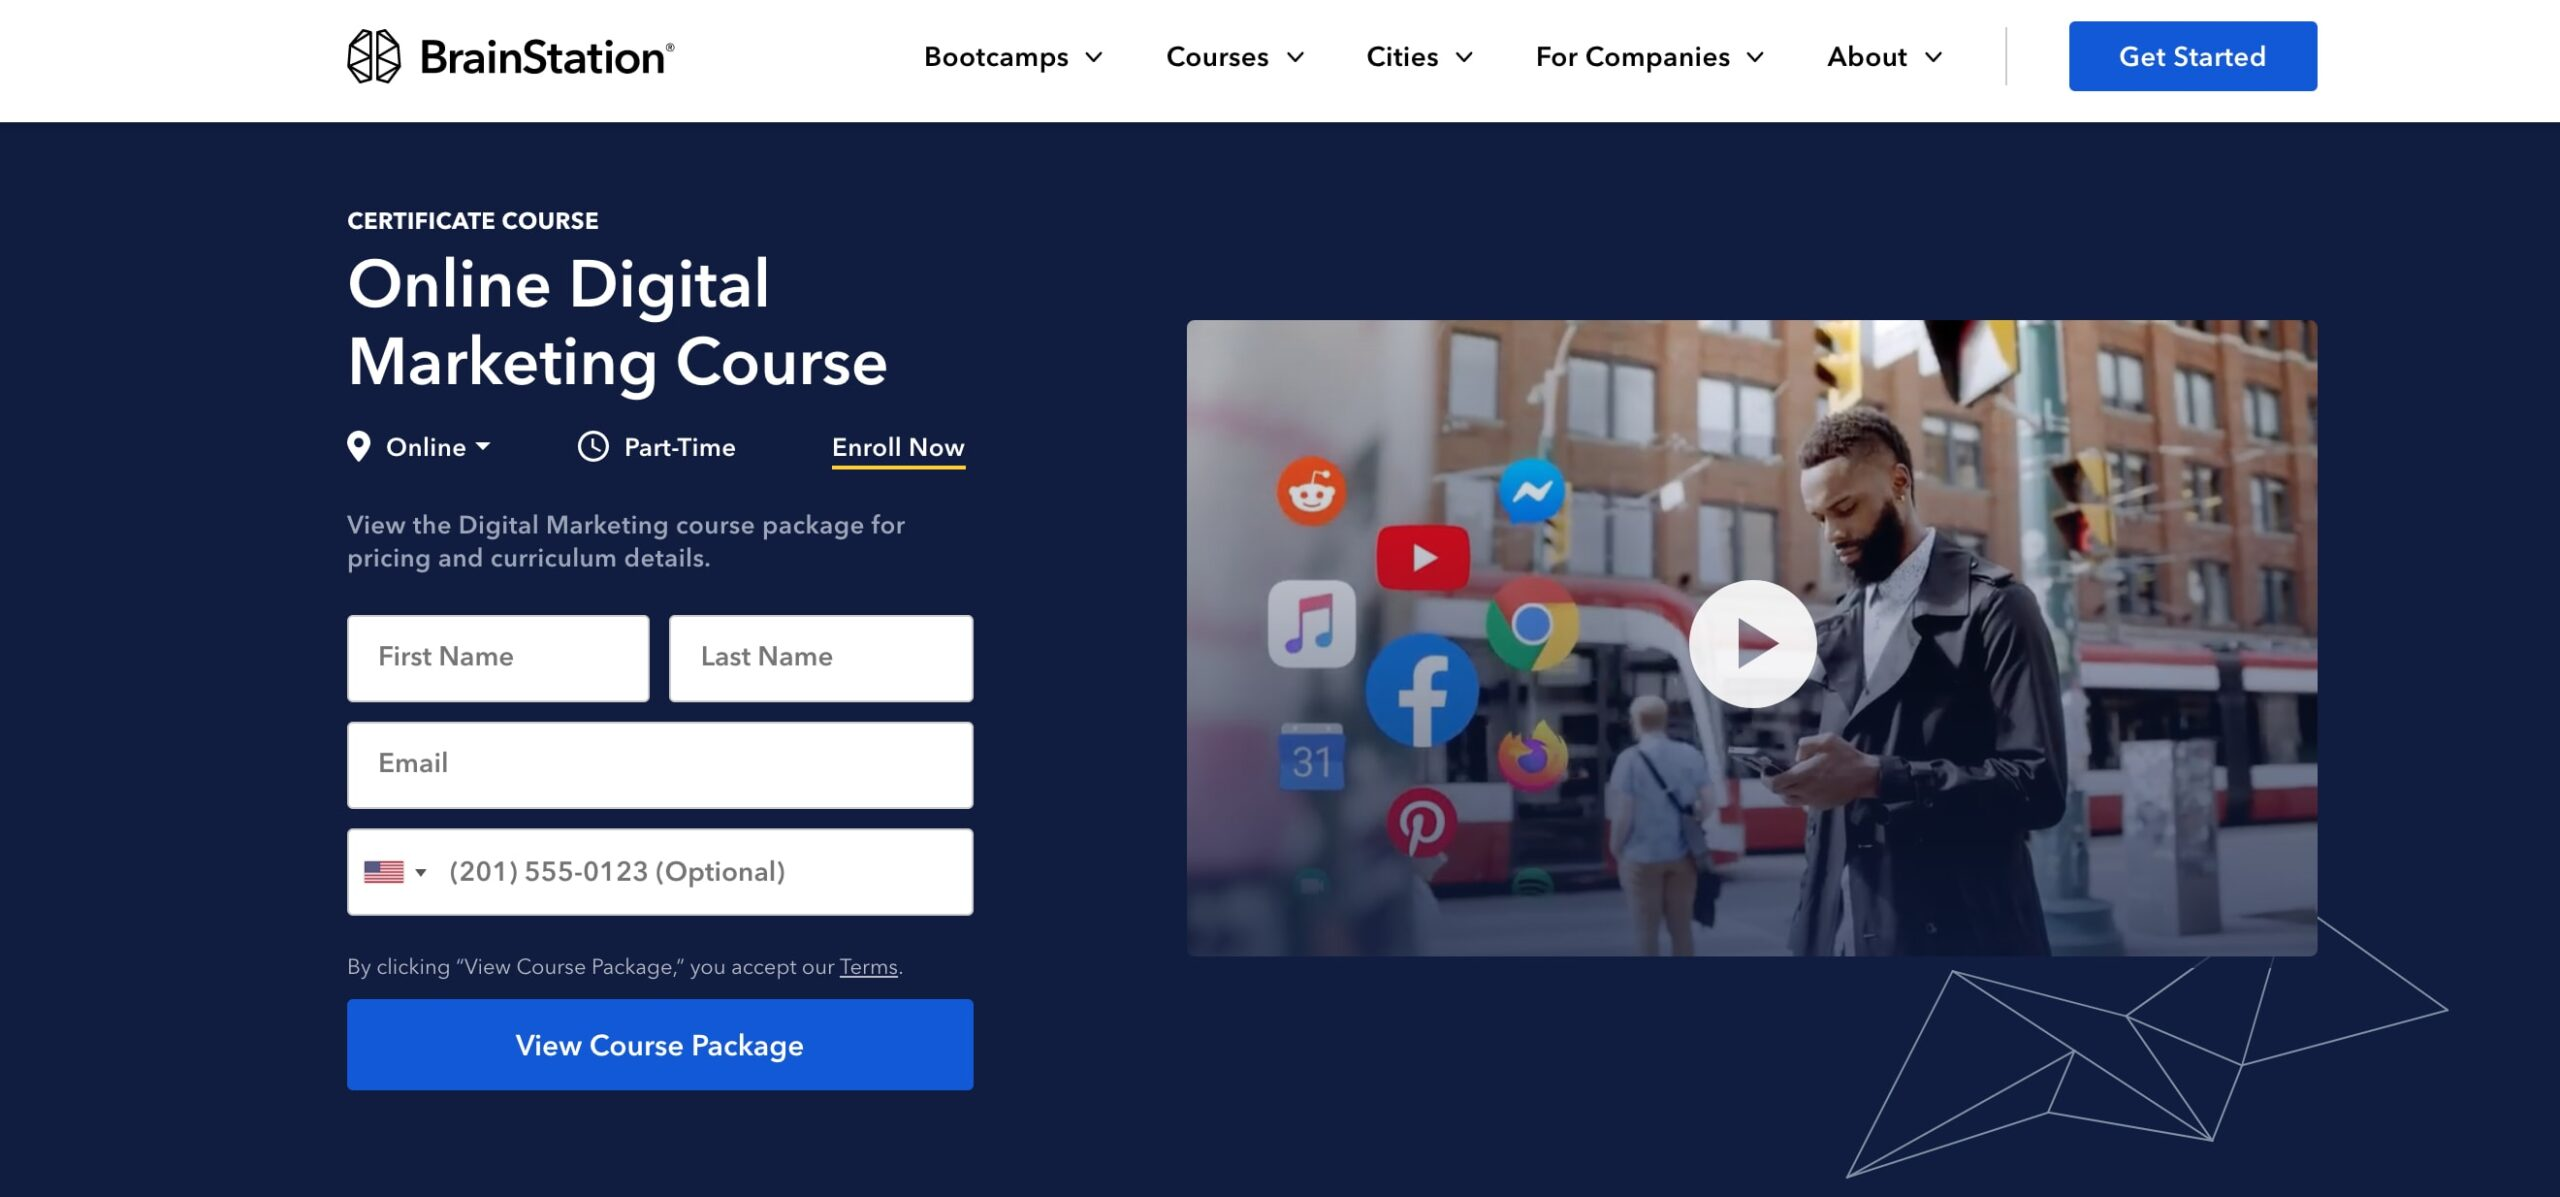 BrainStation Digital Marketing Certificate Course landing page